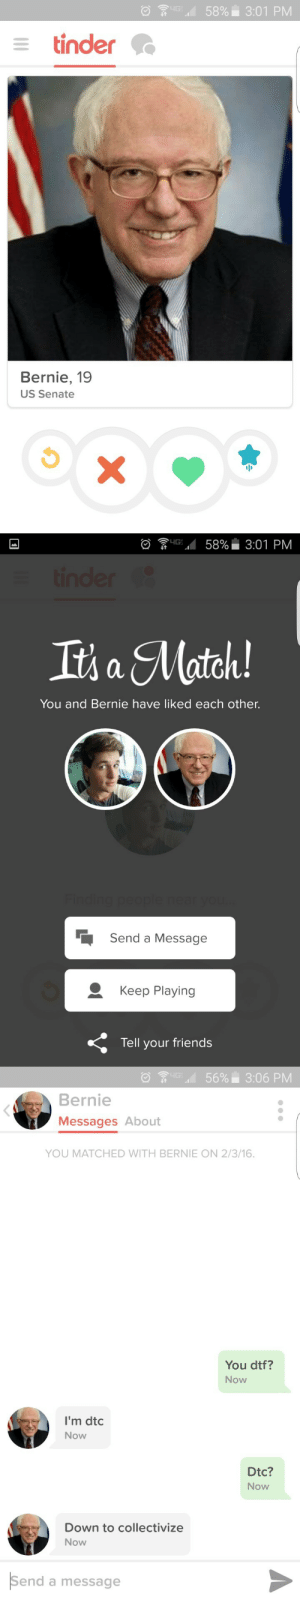 Keep Playing: ·<  58%. 3:01 PM  tinder  Bernie, 19  US Senate   ayG.4 58%. 3:01 PM  Its a Match  You and Bernie have liked each other.  Send a Message  Keep Playing  Tell your friends   it :D ..d  56%  3:06 PM  Bernie  Messages About  YOU MATCHED WITH BERNIE ON 2/3/16.  You dtf?  Now  I'm dtc  Now  Dtc?  Now  Down to collectivize  Now  Send a message